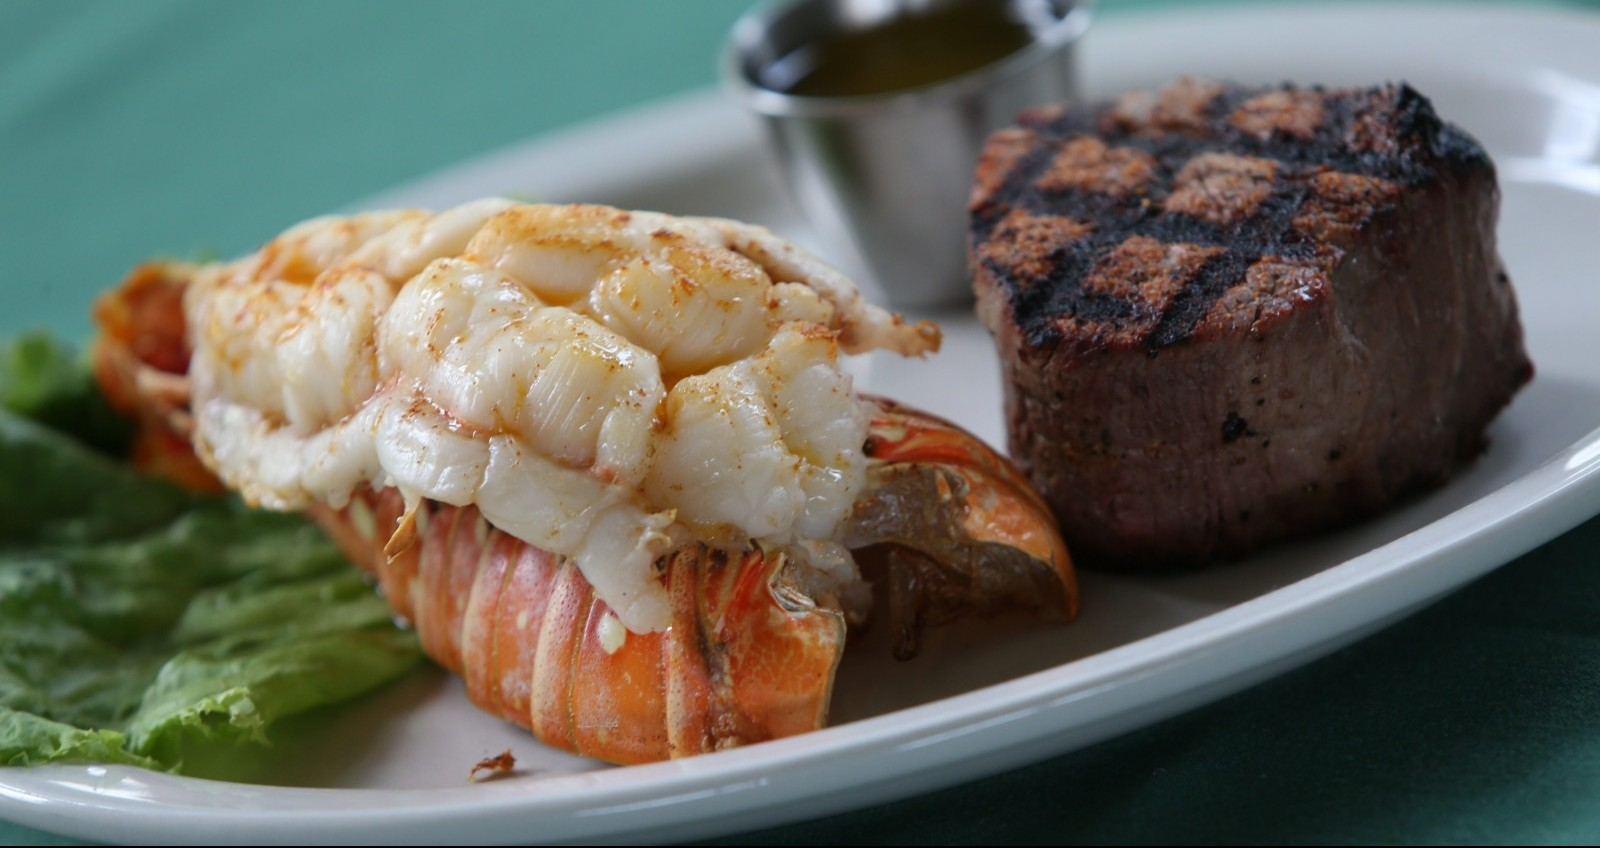 The surf and turf is one of the most popular dishes at Danny Sheehan's. It comes with a 6-ounce filet mignon and an 8-ounce lobster tail, twice-baked potato and garlic toast.  A 10-ounce NY strip is available in instead of the filet mignon. (Sharon Cantillon/Buffalo News)